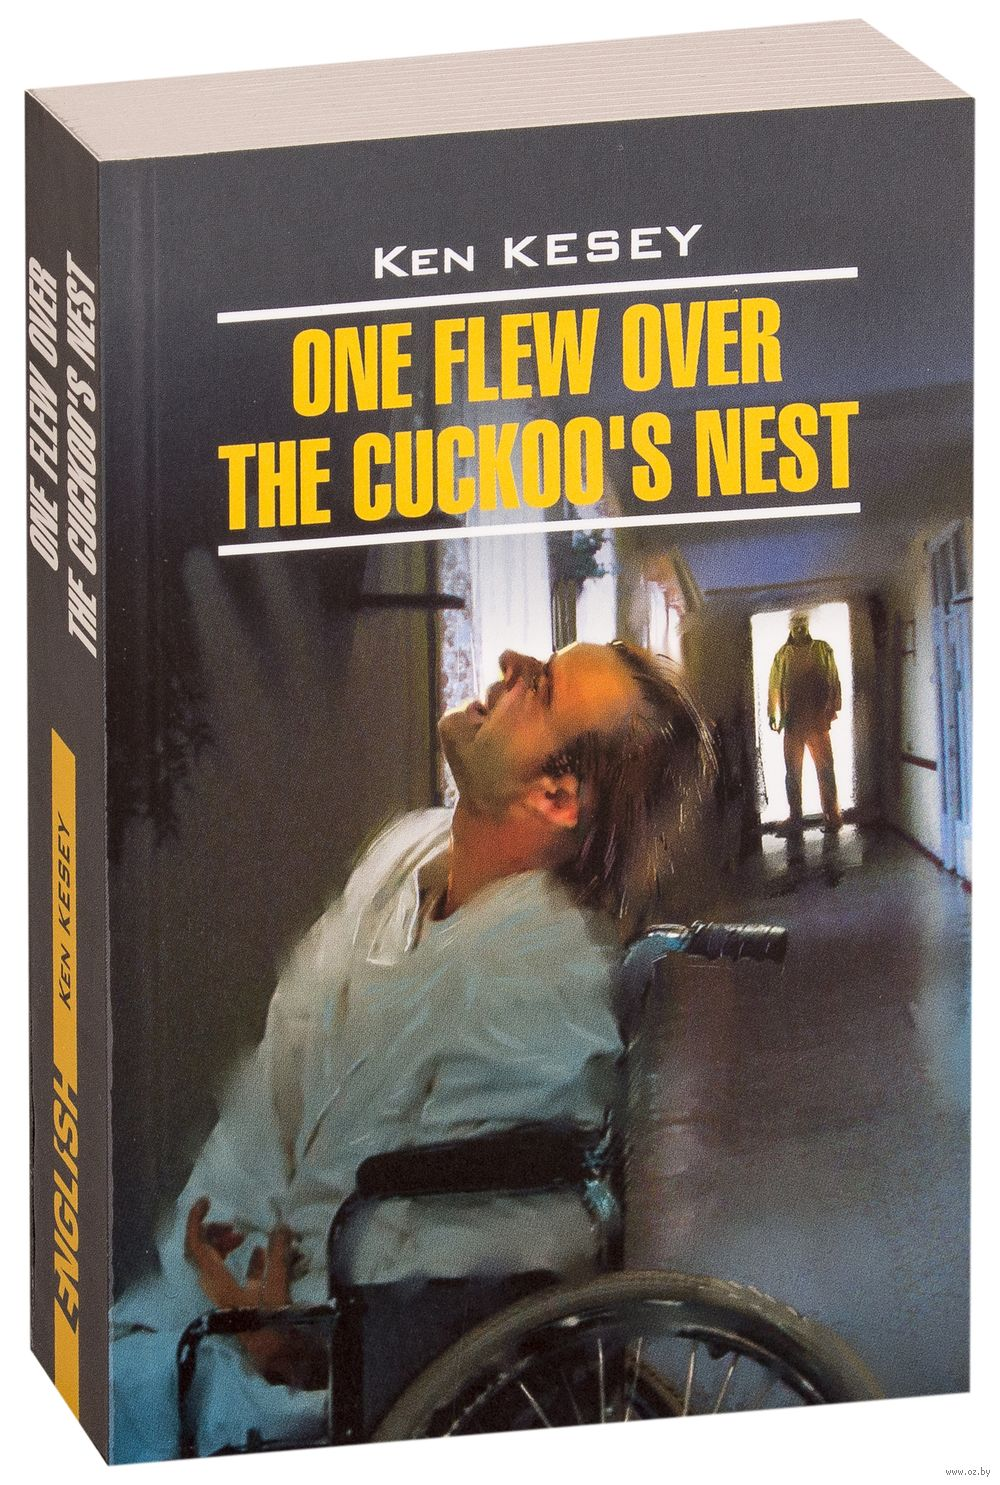 a summary of the novel one flew over the cuckoos nest by ken kesey A part 1 one flew over the cuckoo's nest is the story of a one flew over the cuckoo's nest plot summary related titles on this novel: introduction ken kesey.